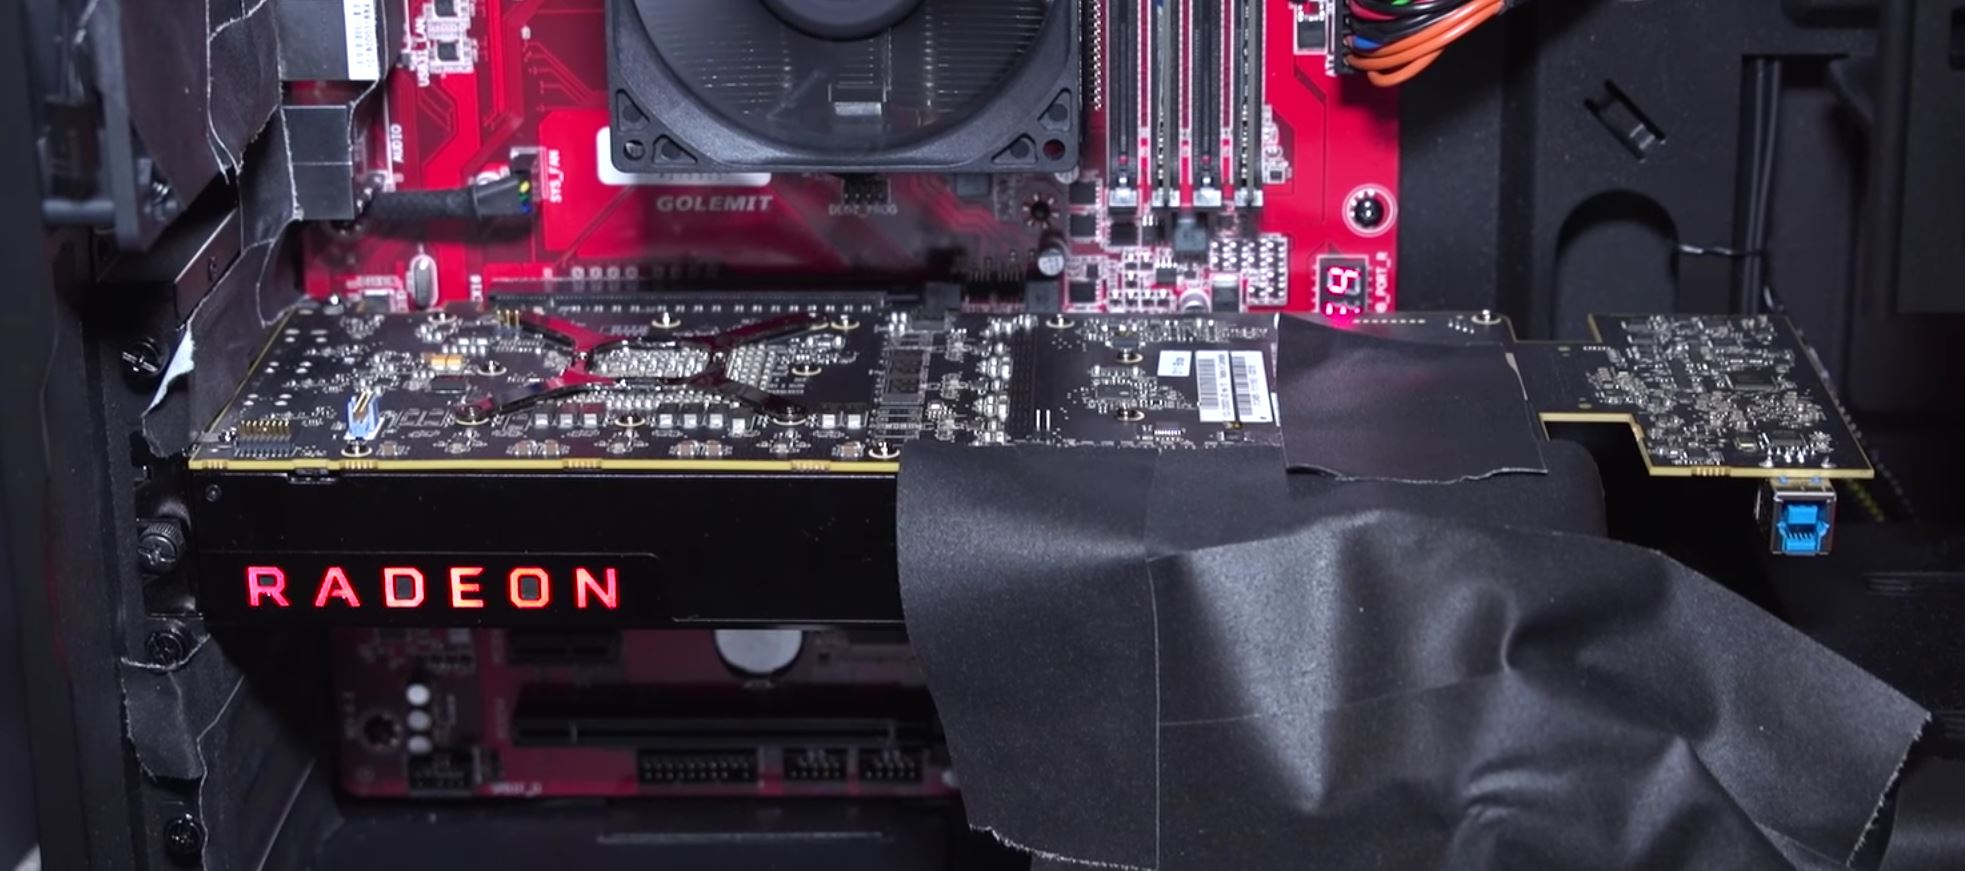 Photo of Radeon Vega arată bizar, dar din motive bune